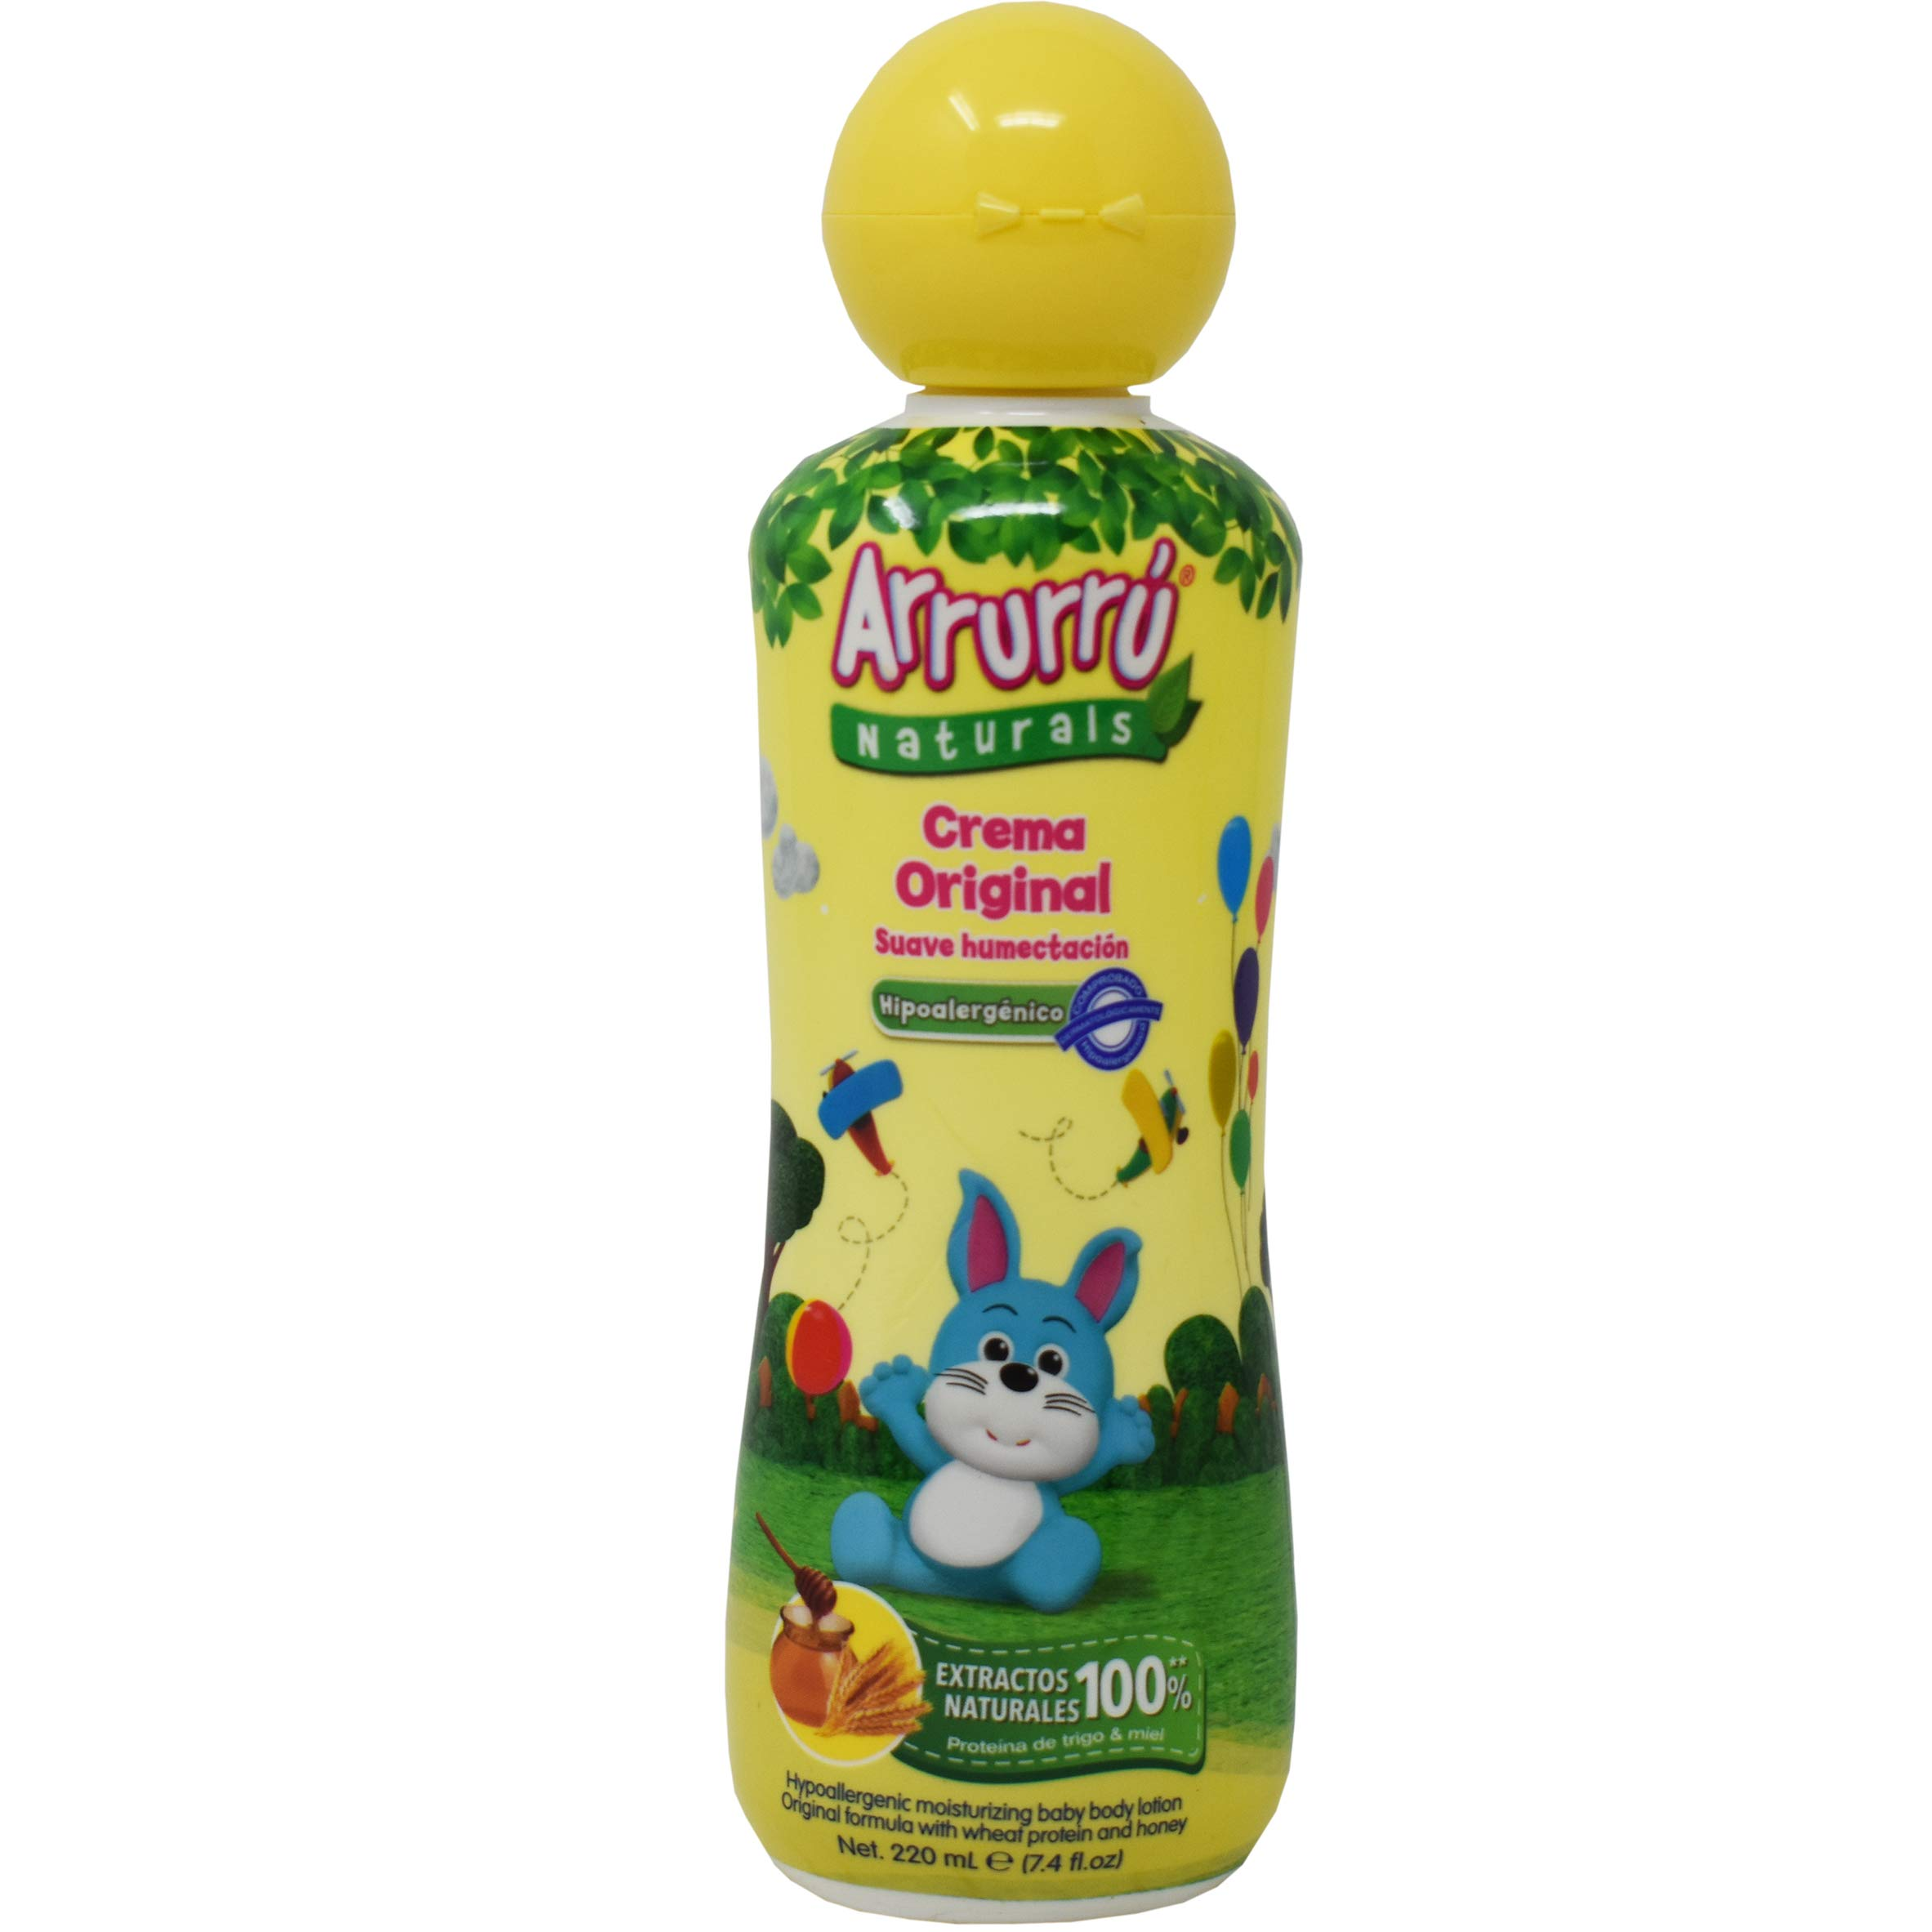 Arrurru Naturals Crema Humectante Formula Original (Moisturizing Body Lotion For Baby Original Formula) 7.4